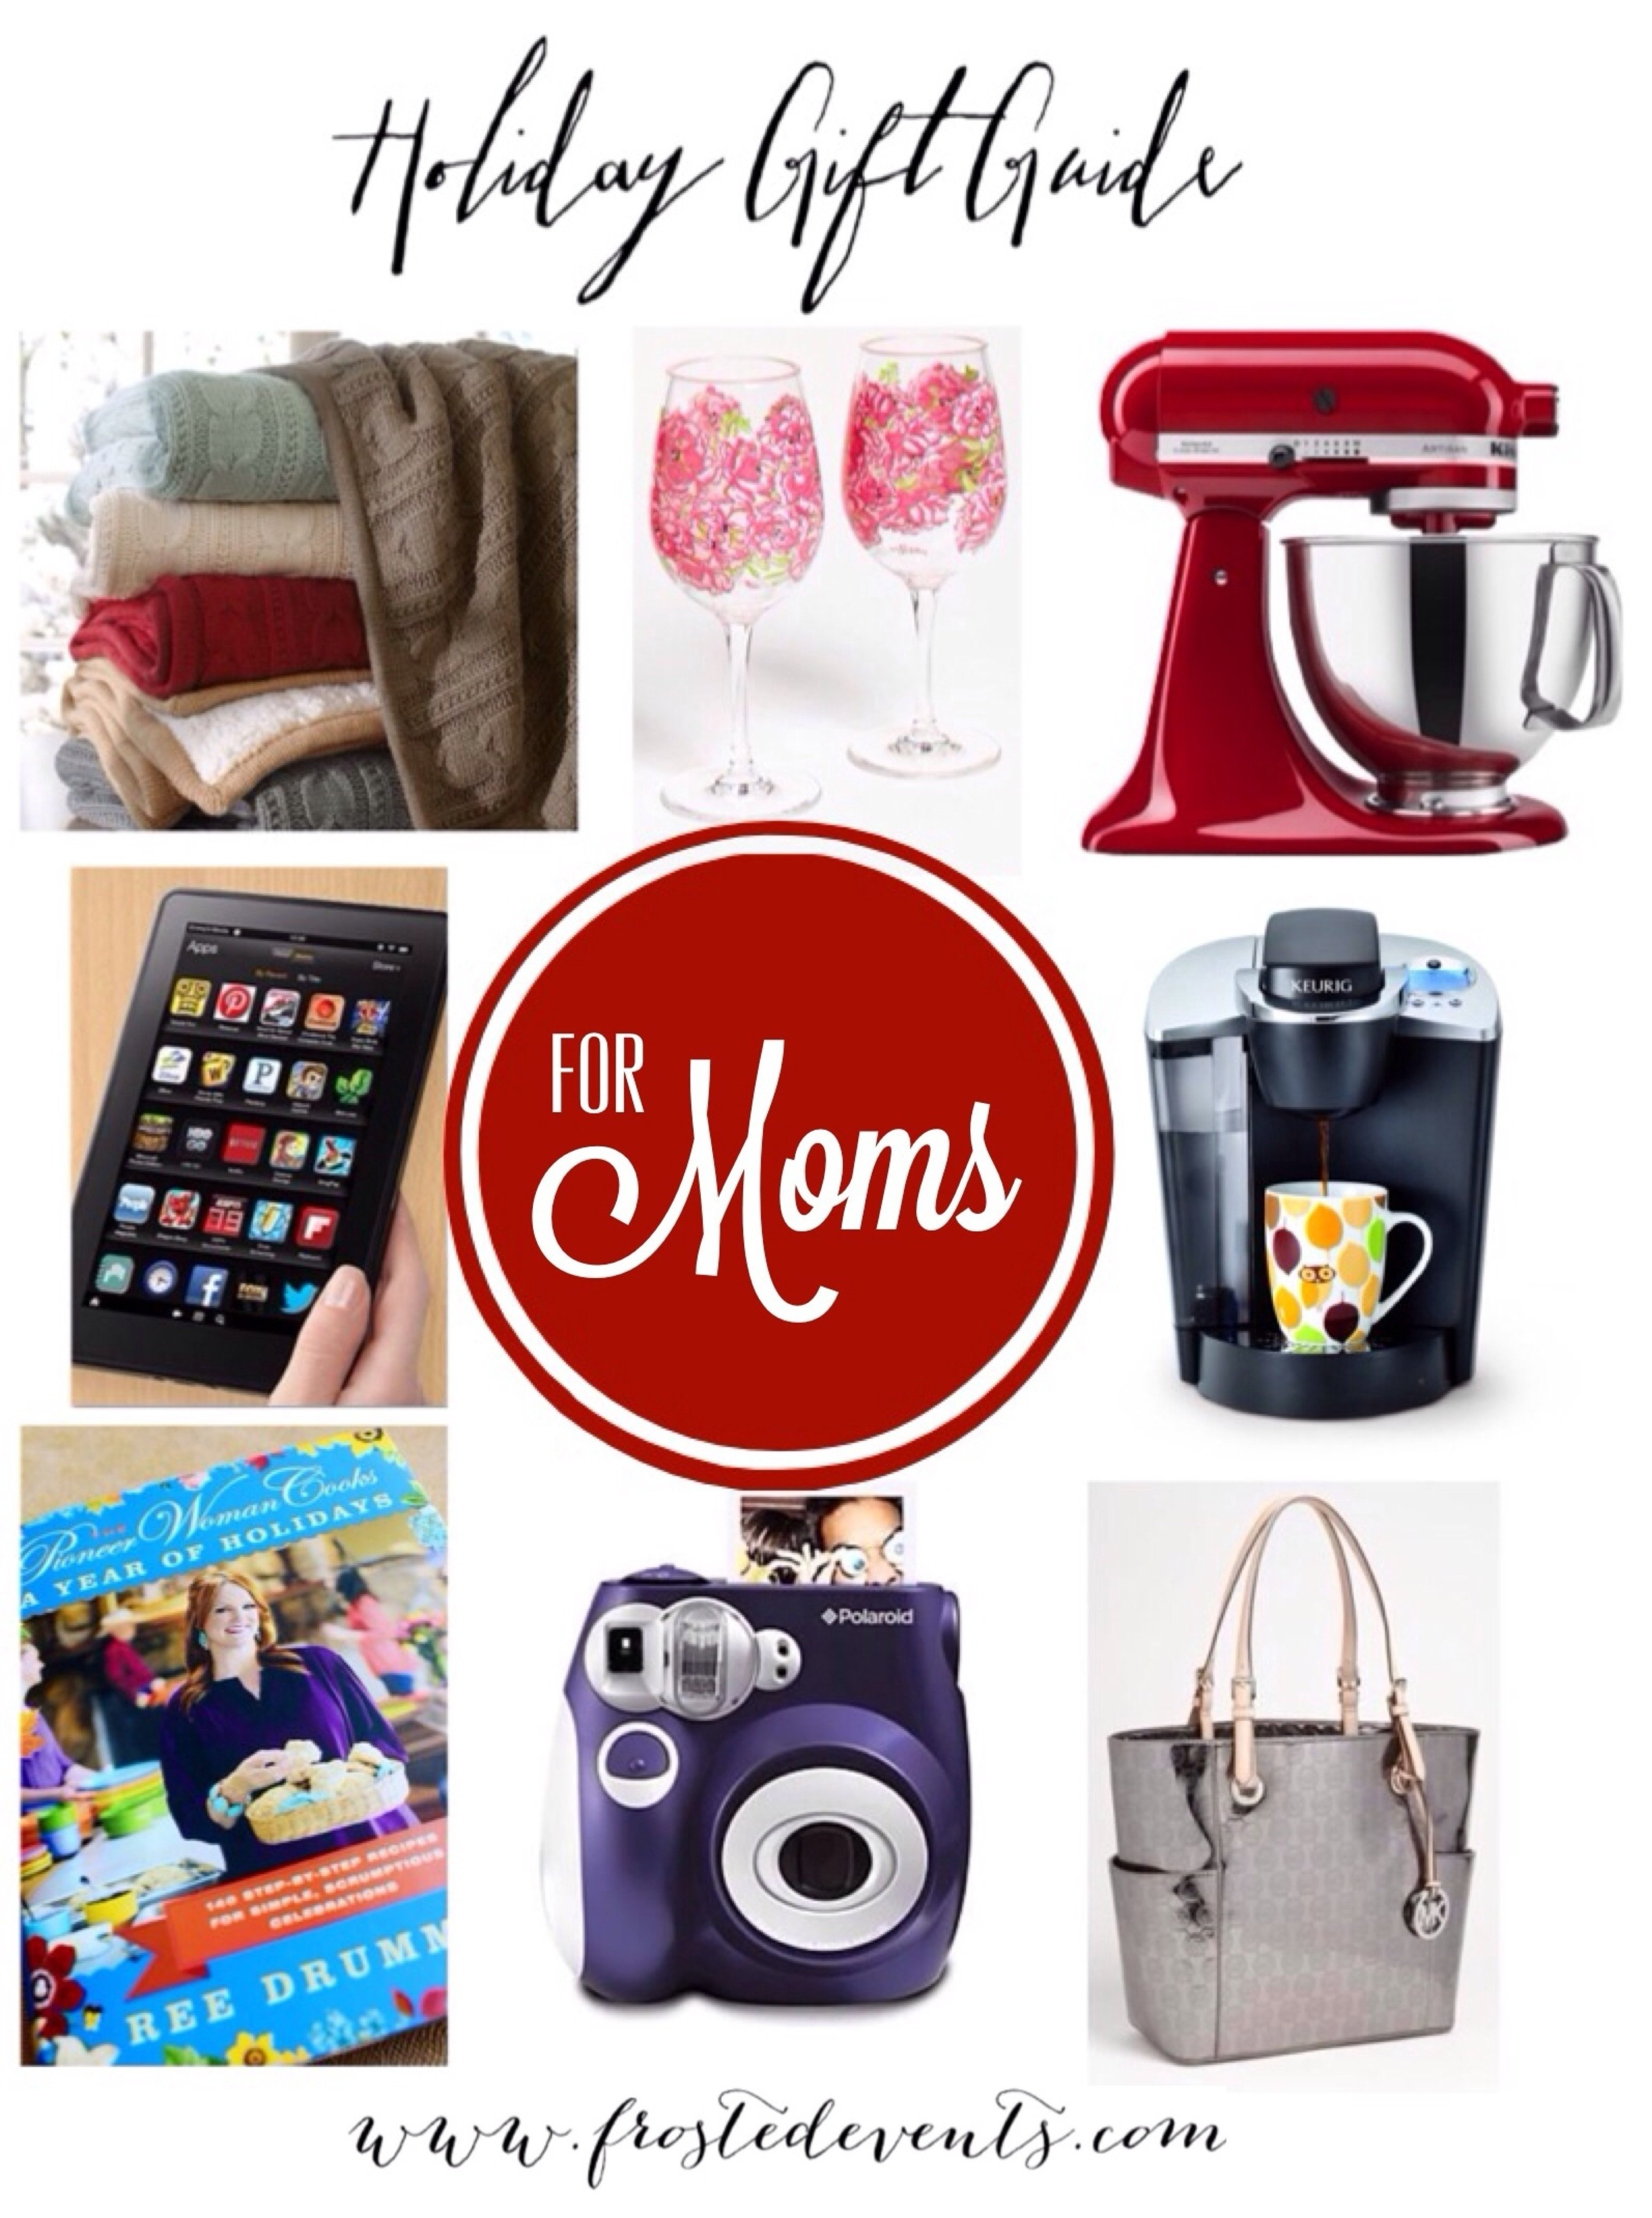 10 Fabulous Christmas Gift Ideas For Moms holiday gifts for moms 7 2020